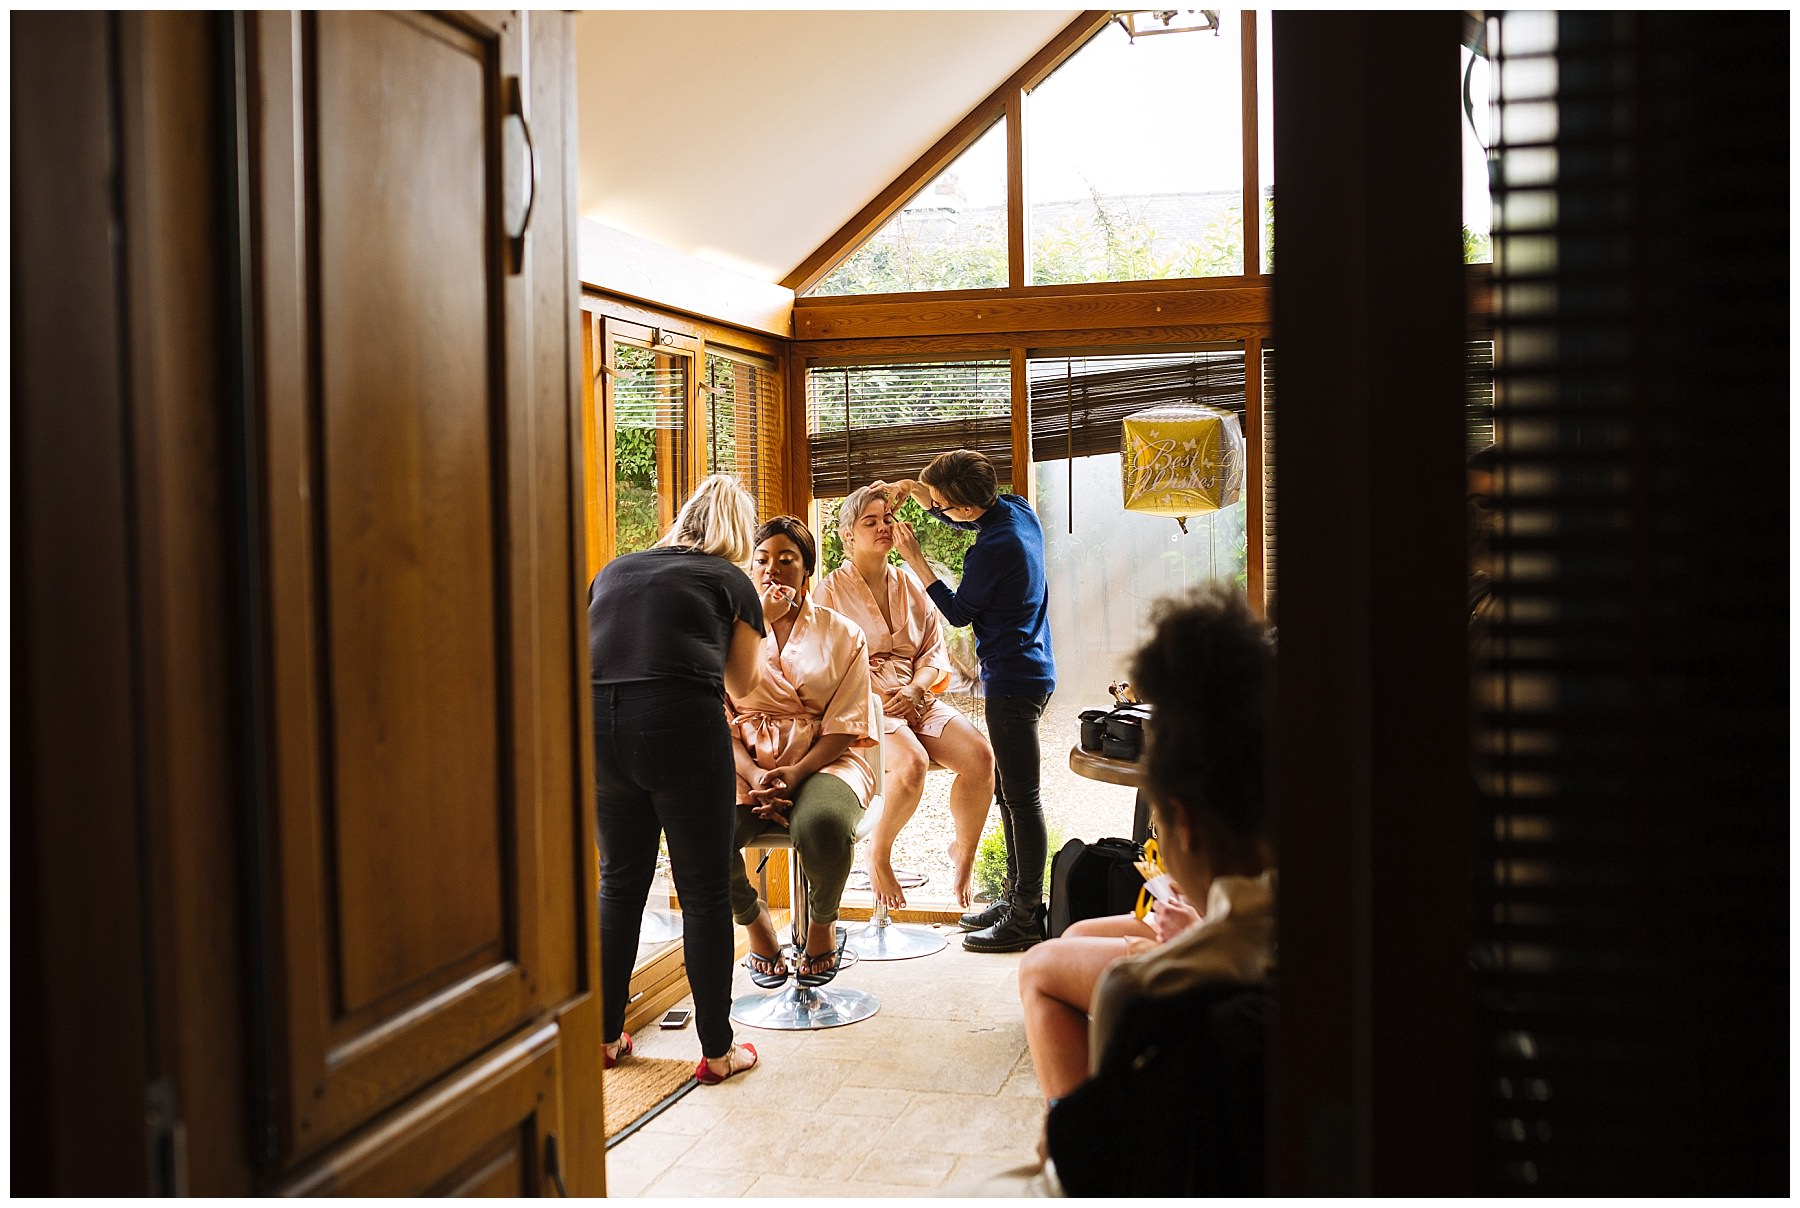 Bridal prep in the old stables at Swancar Farm